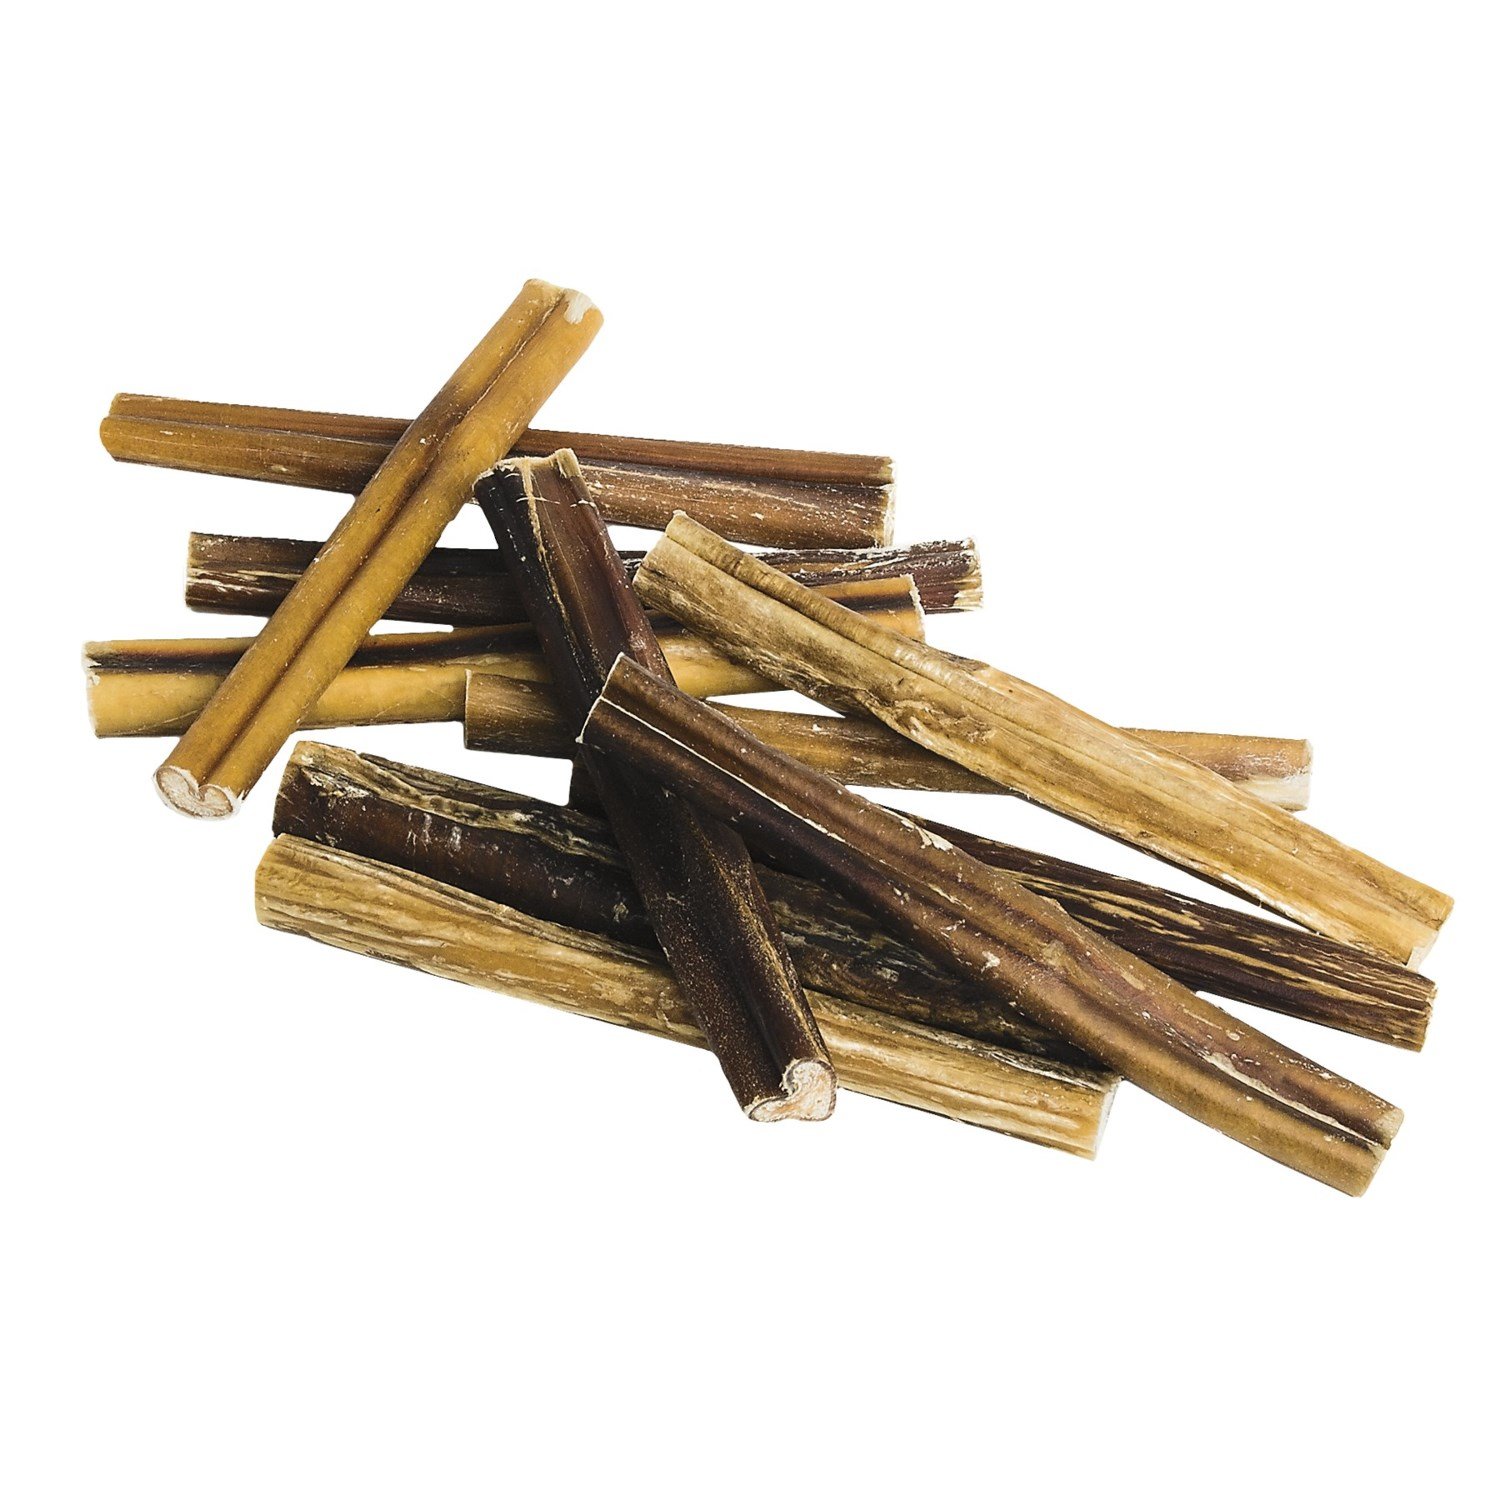 aussie naturals 6 bully stick dog chews 1 dozen save 50. Black Bedroom Furniture Sets. Home Design Ideas